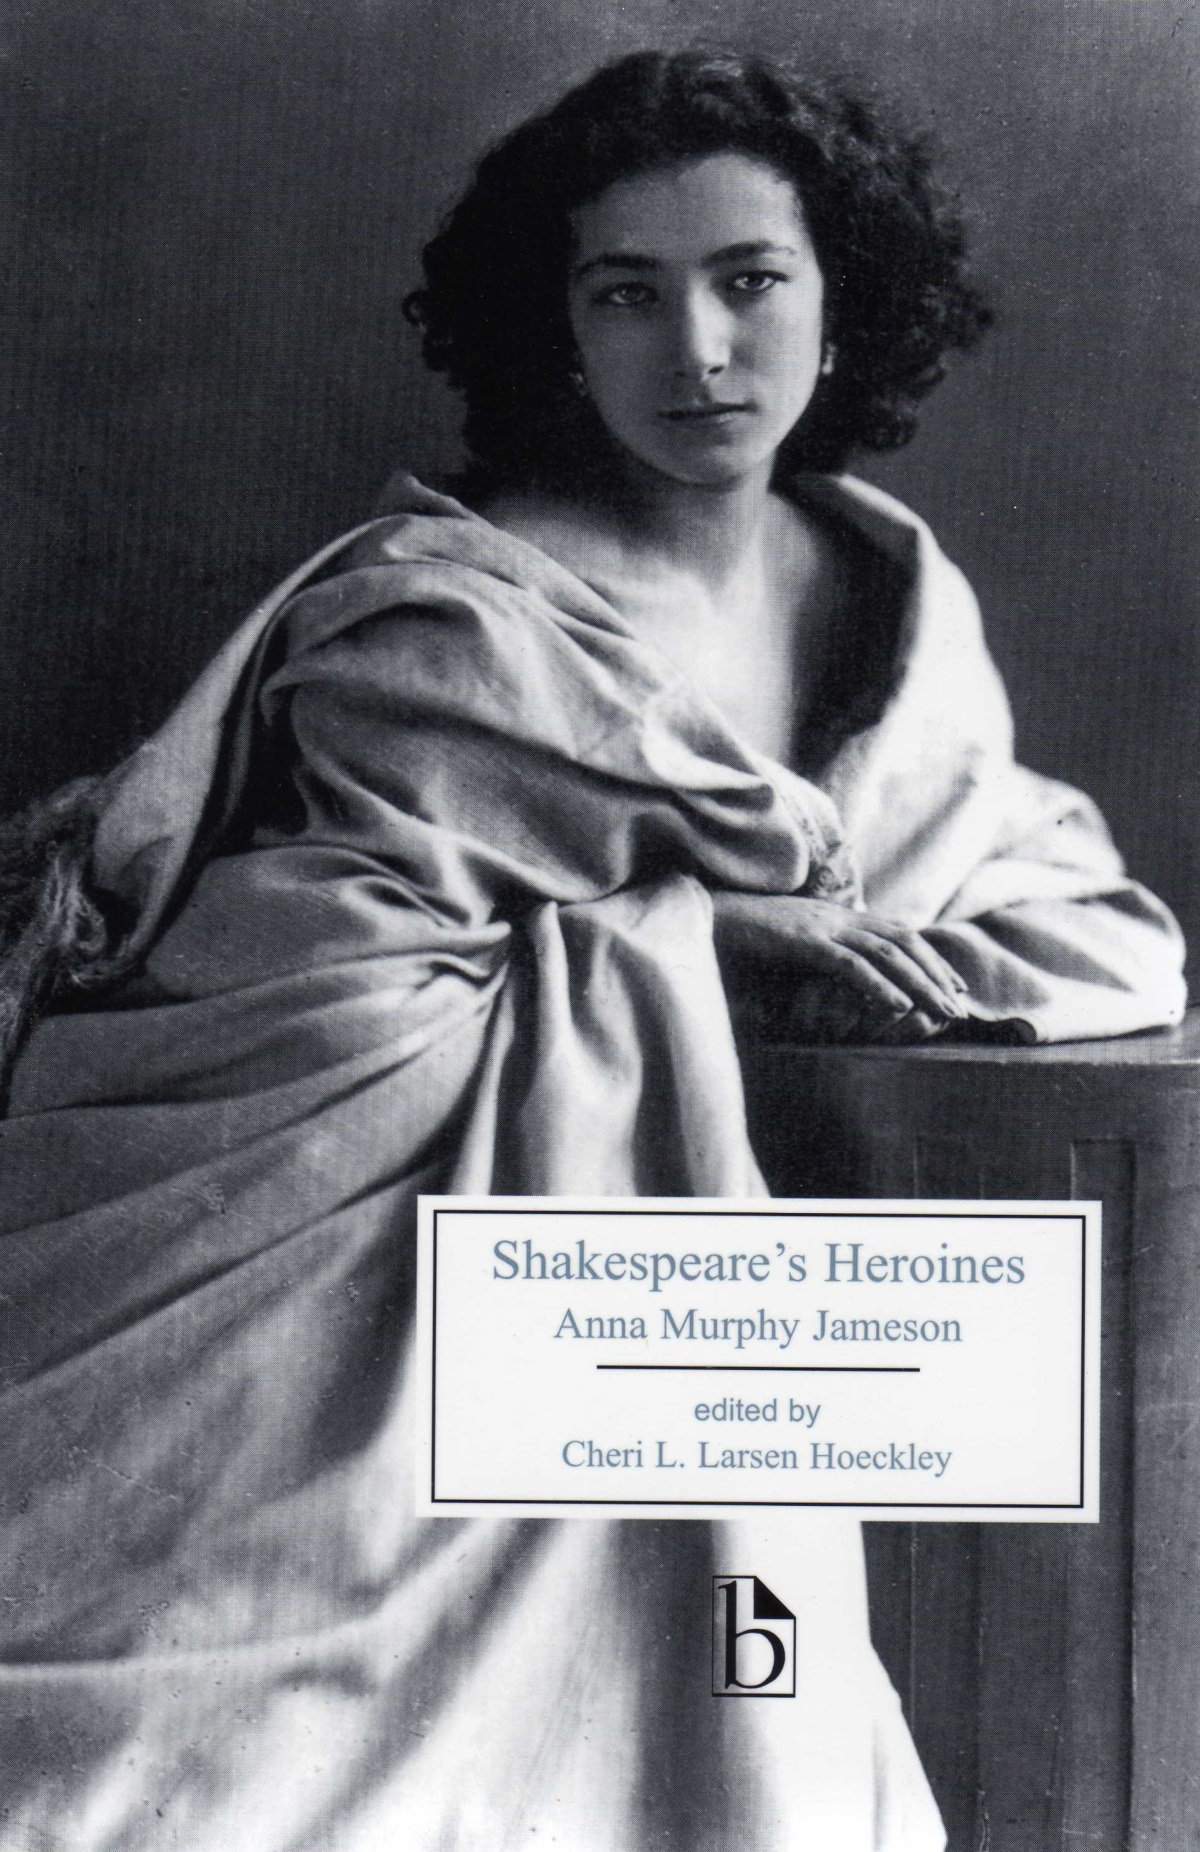 an essay on shakespeare Essays and criticism on william shakespeare - critical essays.